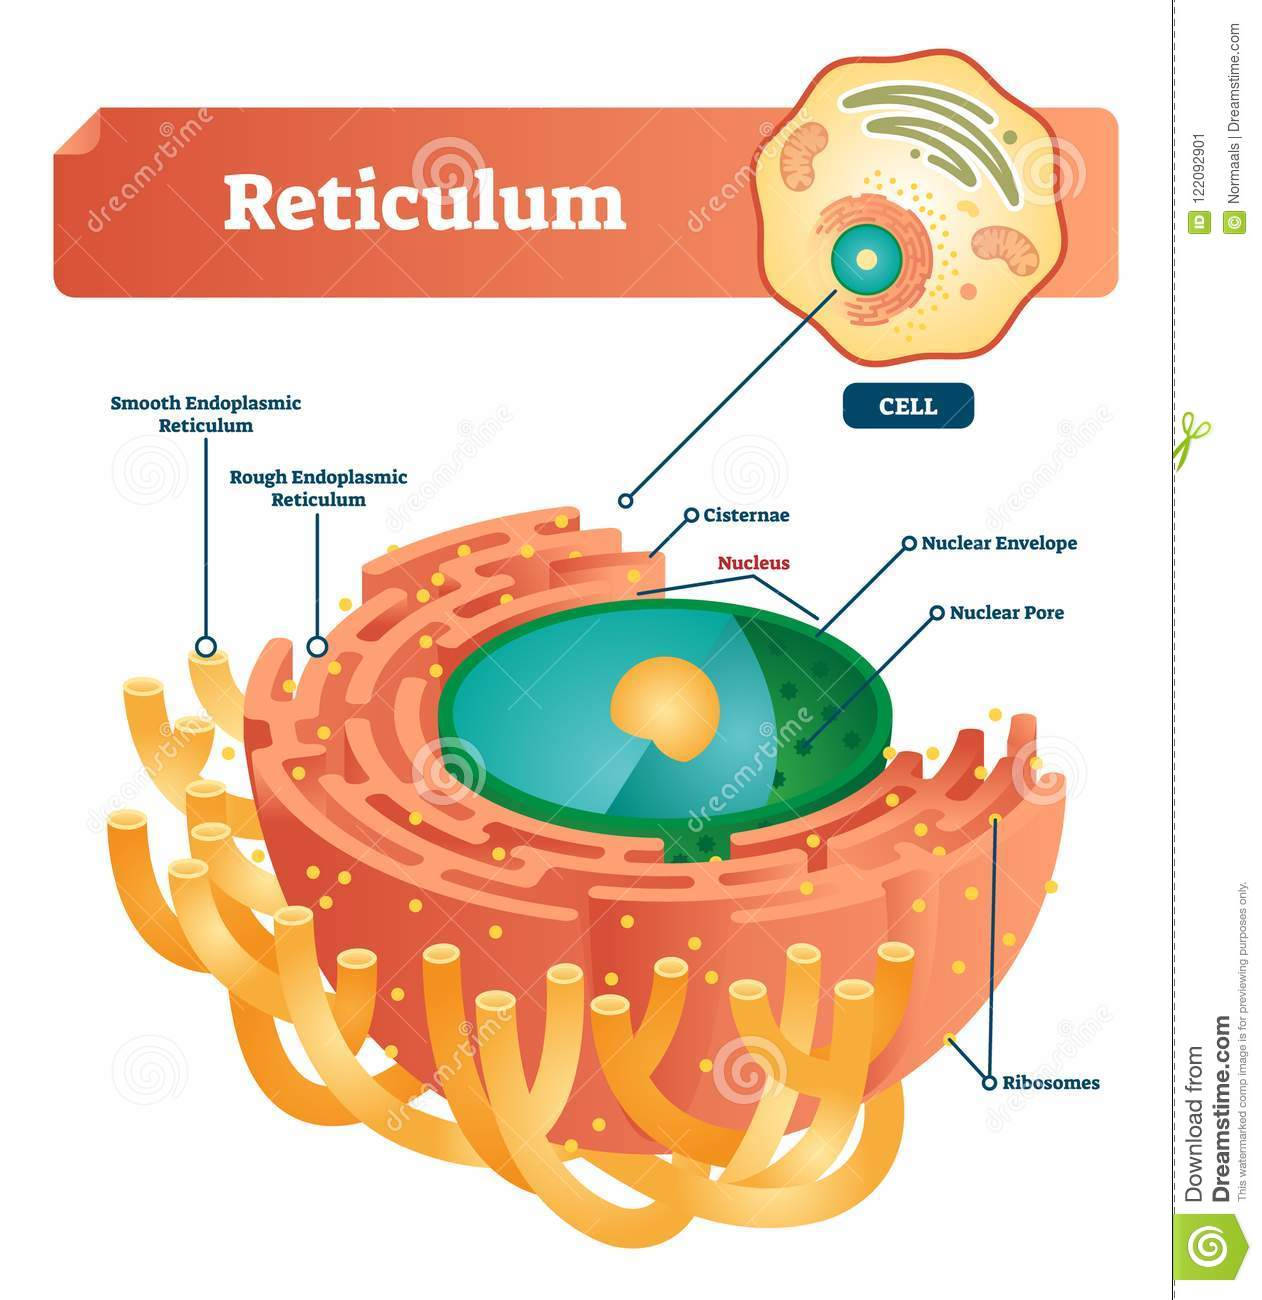 hight resolution of reticulum labeled vector illustration scheme anatomical diagram with endoplasmic reticulum cisternae nucleus and ribosomes